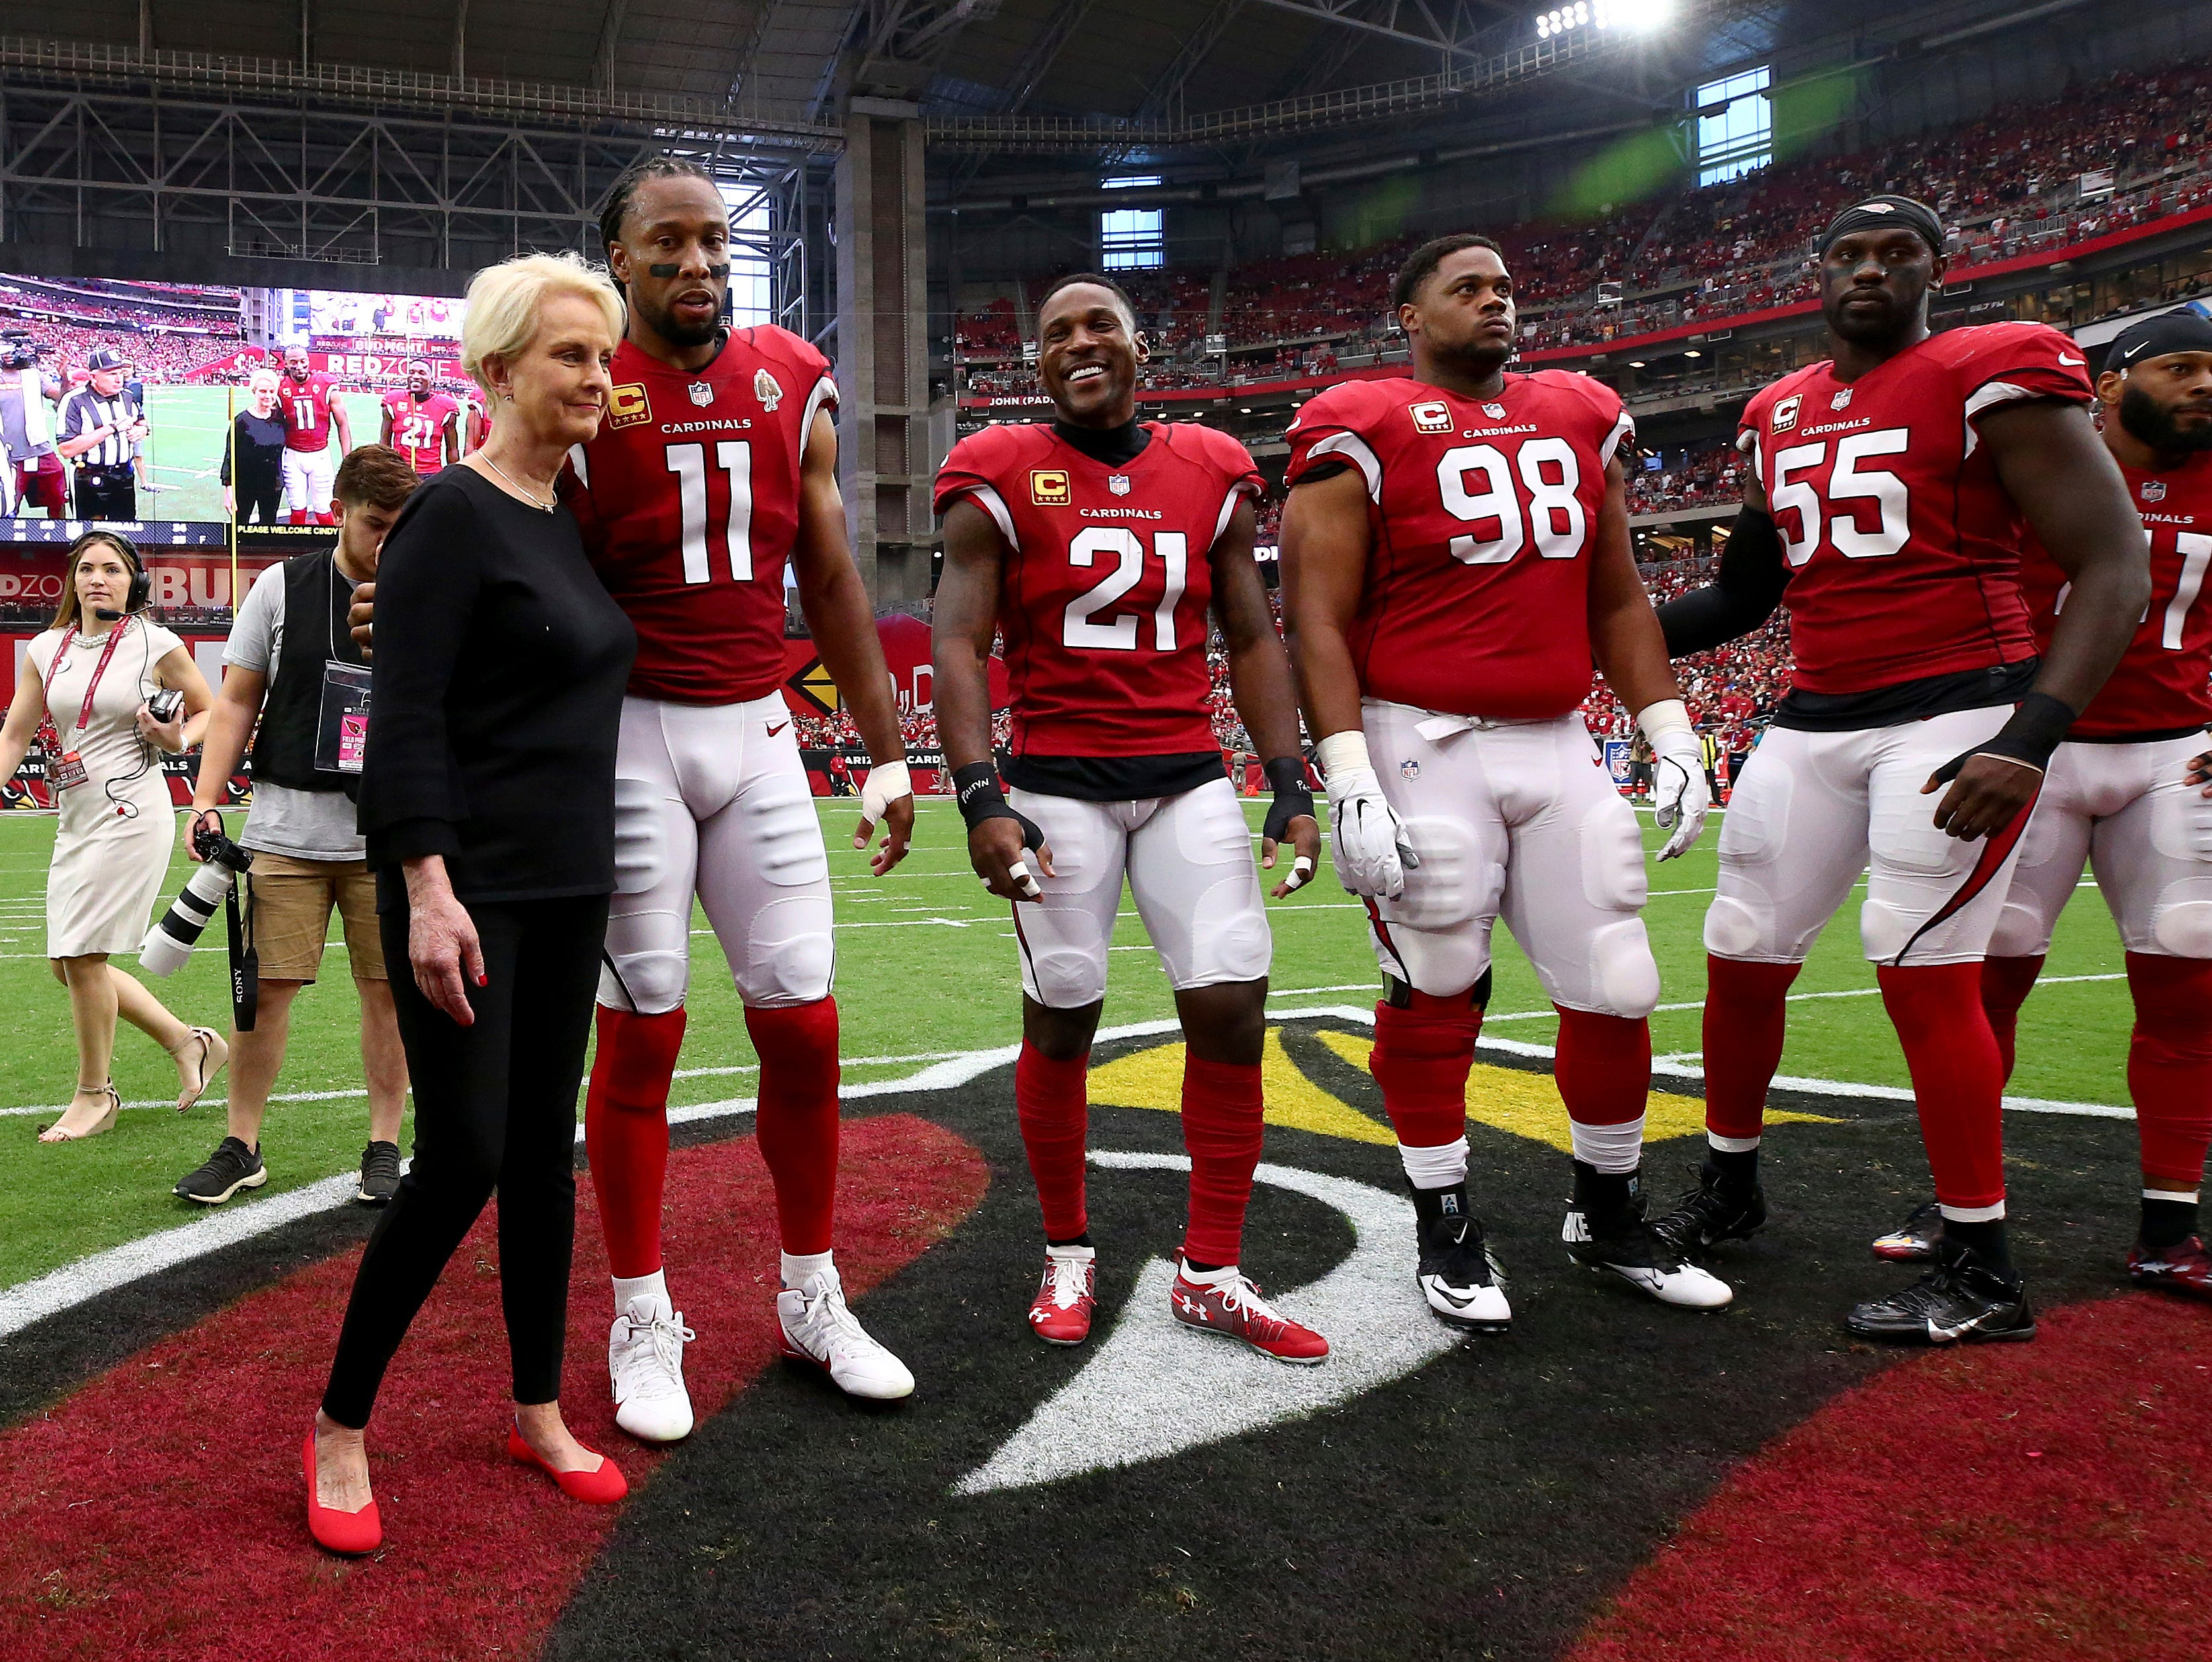 Cindy McCain, wife of the late U.S. Sen. John McCain, R-Ariz., embraces Arizona Cardinals' Larry Fitzgerald (11), Patrick Peterson (21), Corey Peters (98) and Chandler Jones (55) as an honorary team captain during the coin toss prior to an NFL football game against the Washington Redskins , Sunday, Sept. 9, 2018, in Glendale, Ariz. (AP Photo/Rob Schumacher, Pool)